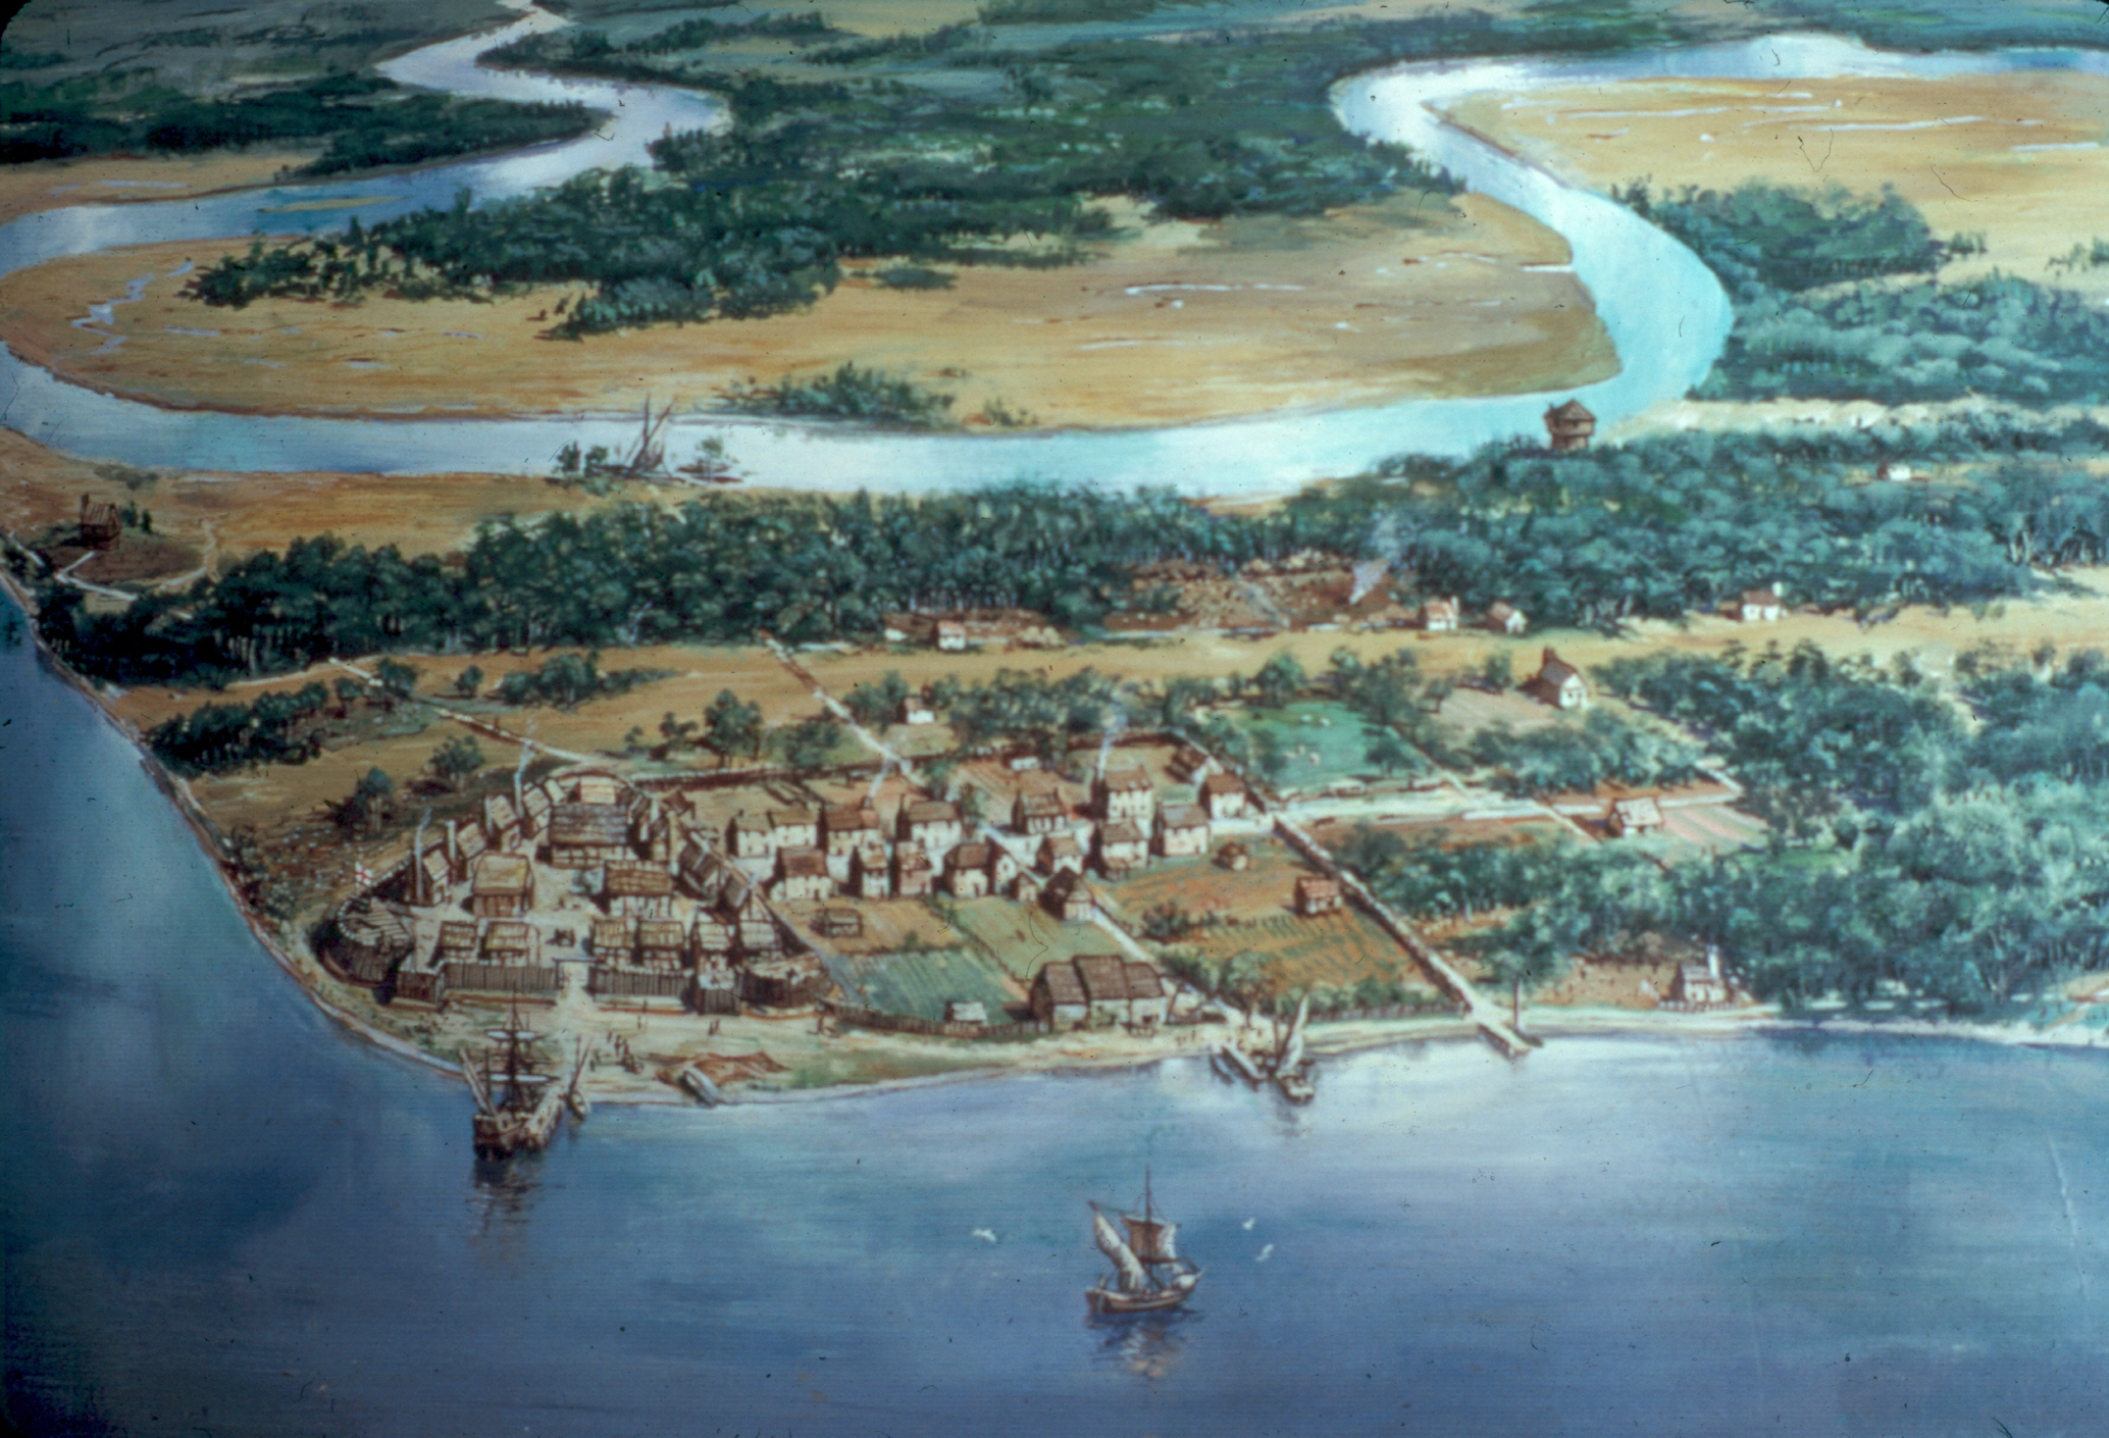 the colonial settlement in virginia Jamestown, founded in 1607, was the first successful permanent english settlement in what would become the united states the settlement thrived for nearly 100 years as the capital of the virginia colony it was abandoned after the capital moved to williamsburg in 1699 a preservationist group took over.